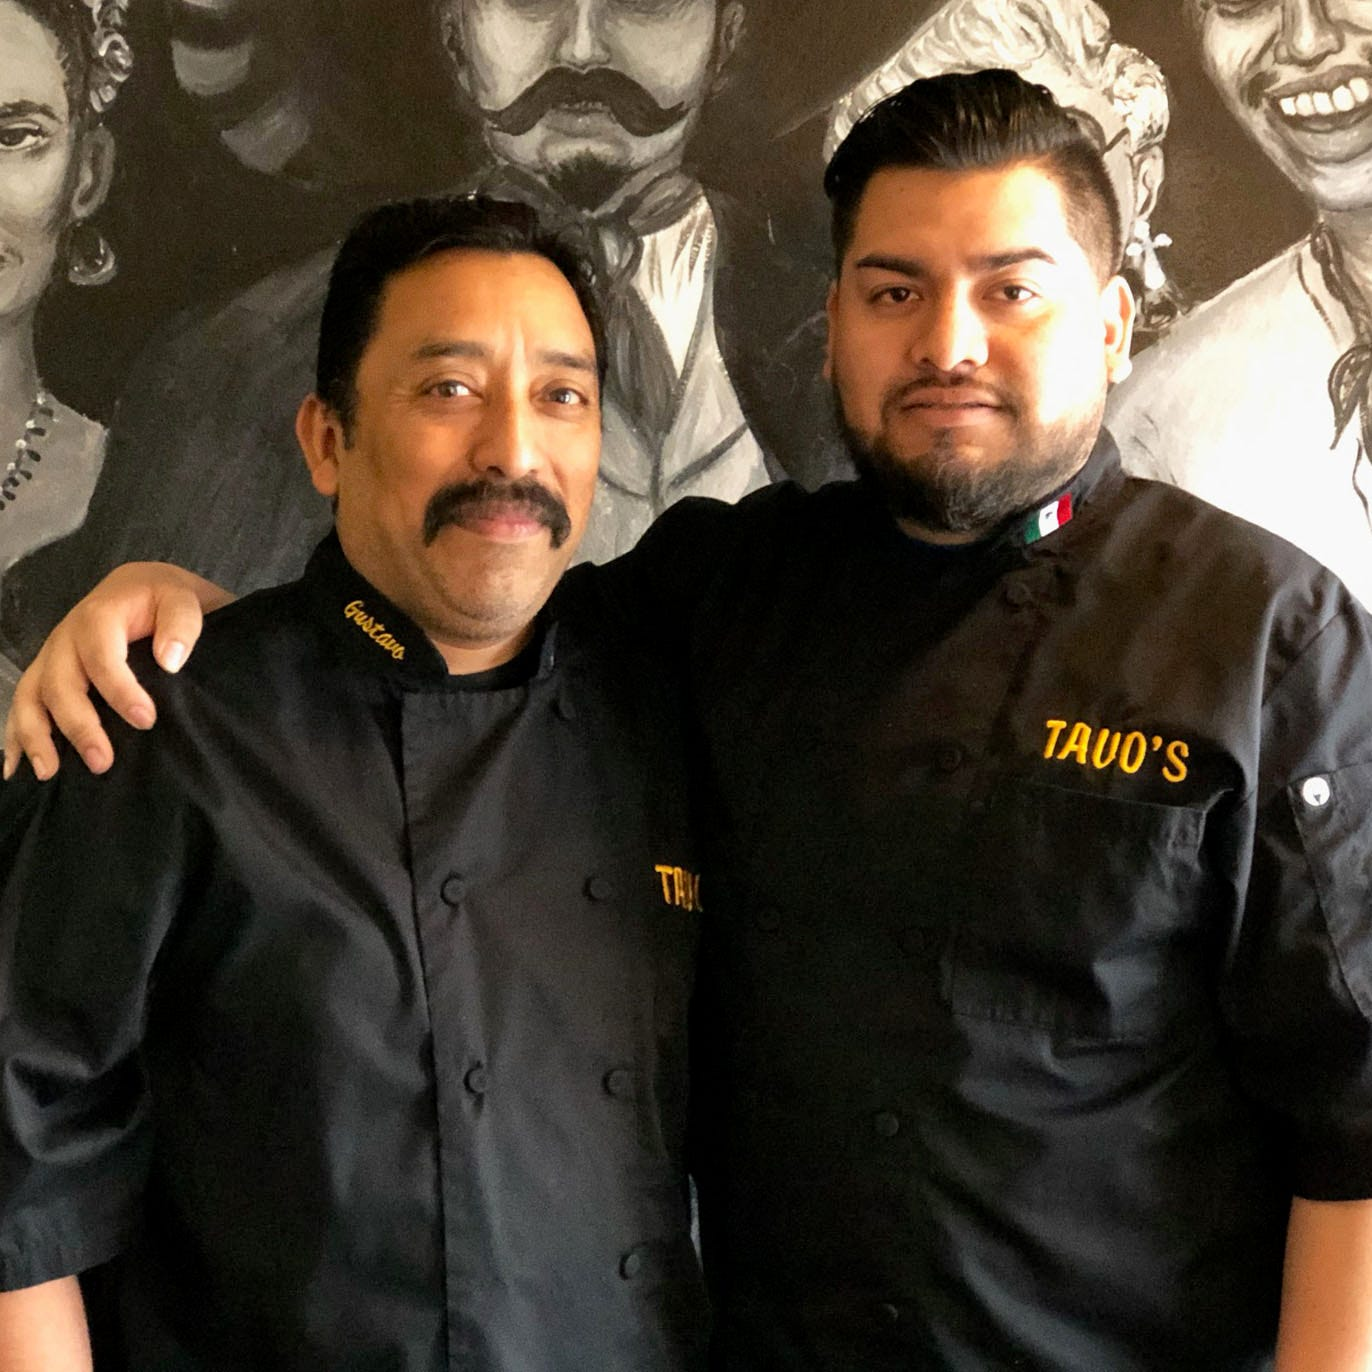 'Every plate has its own flair' at Mexican-inspired restaurant with father-son team